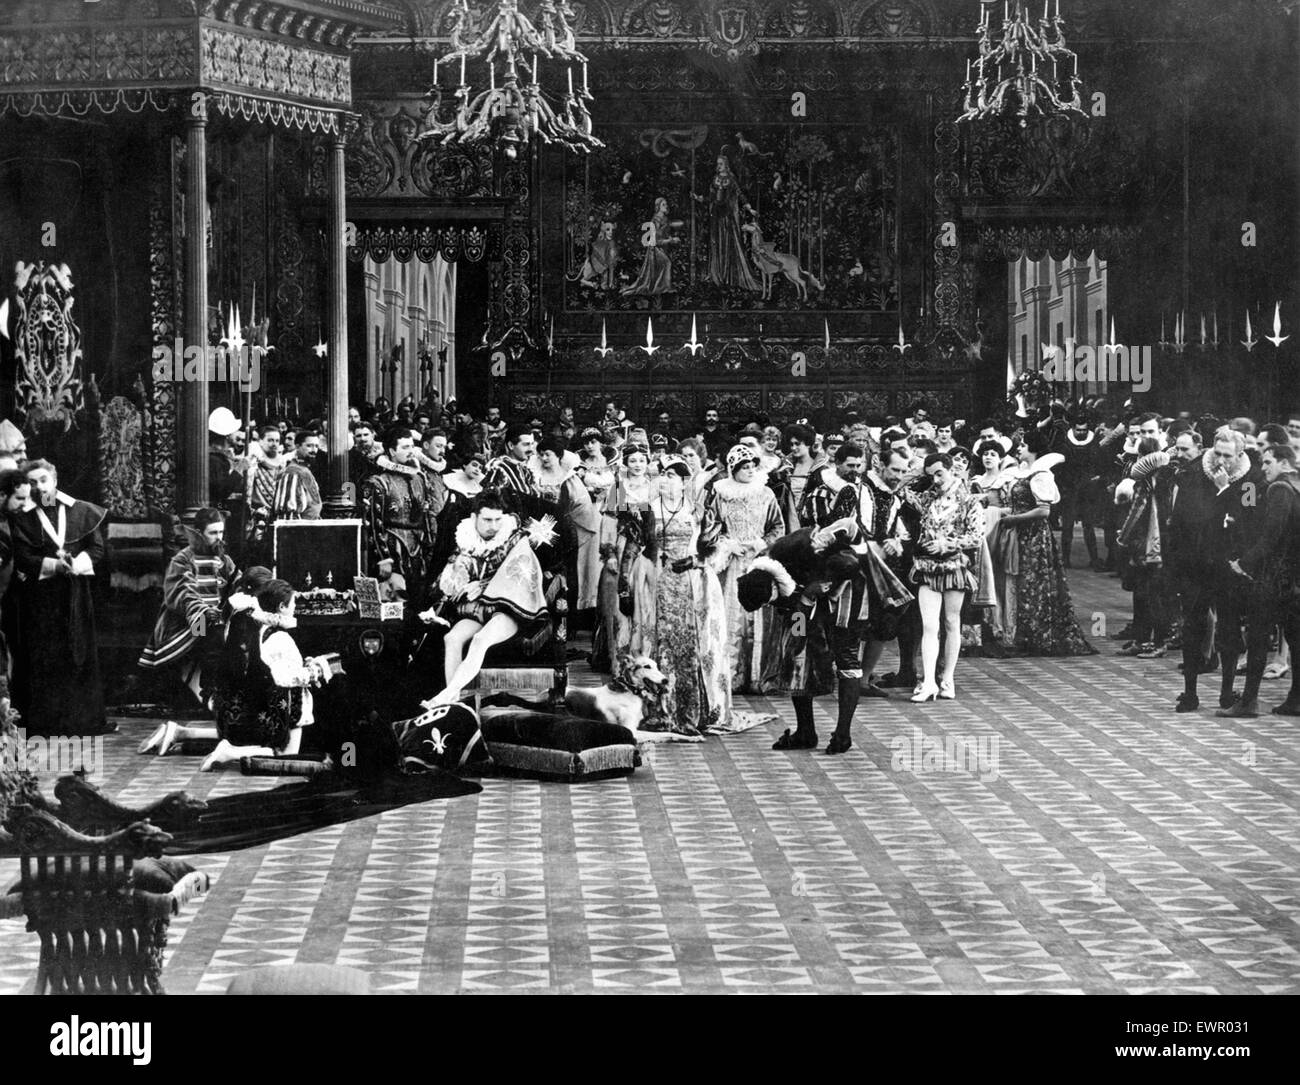 D. W. Griffith  - Intolerance - Stock Image